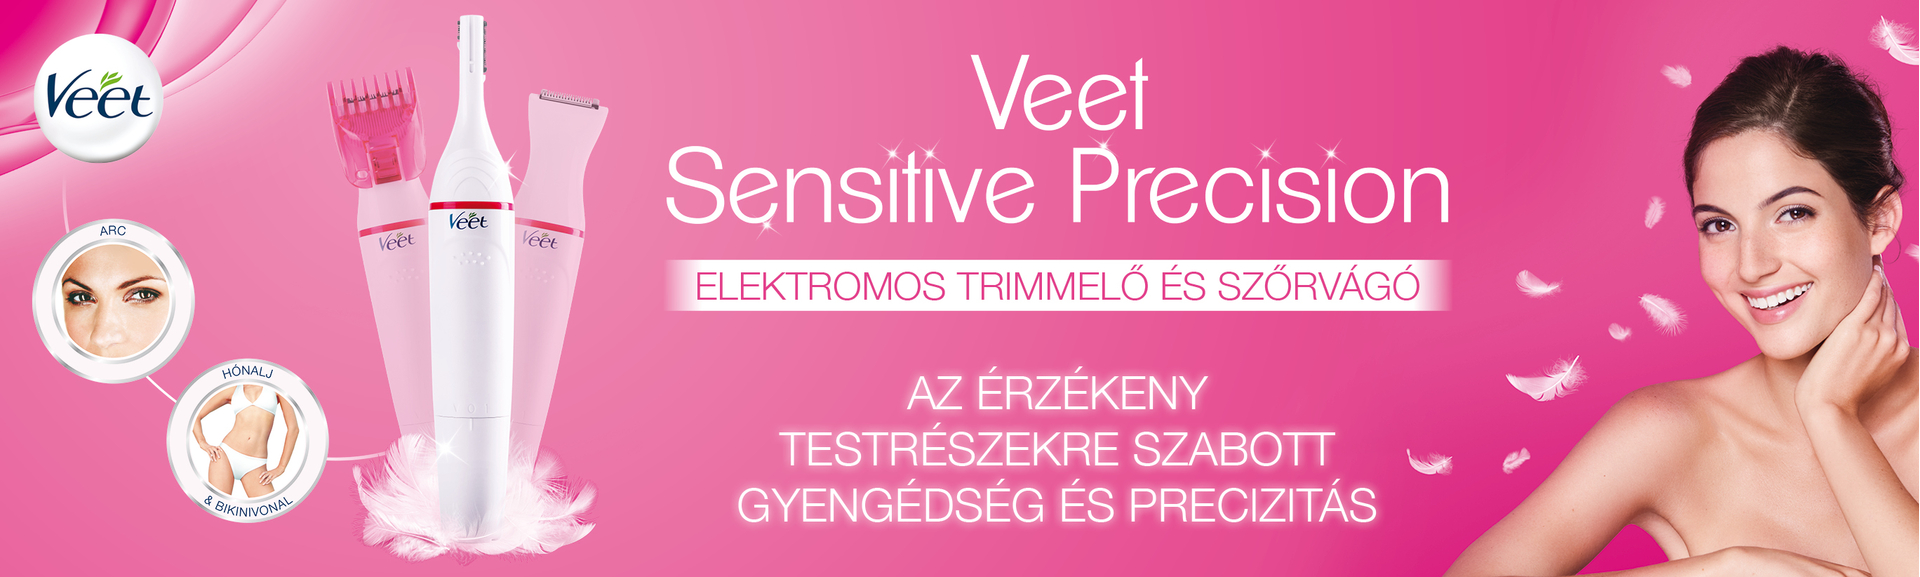 Veet Sensitive Precision_1